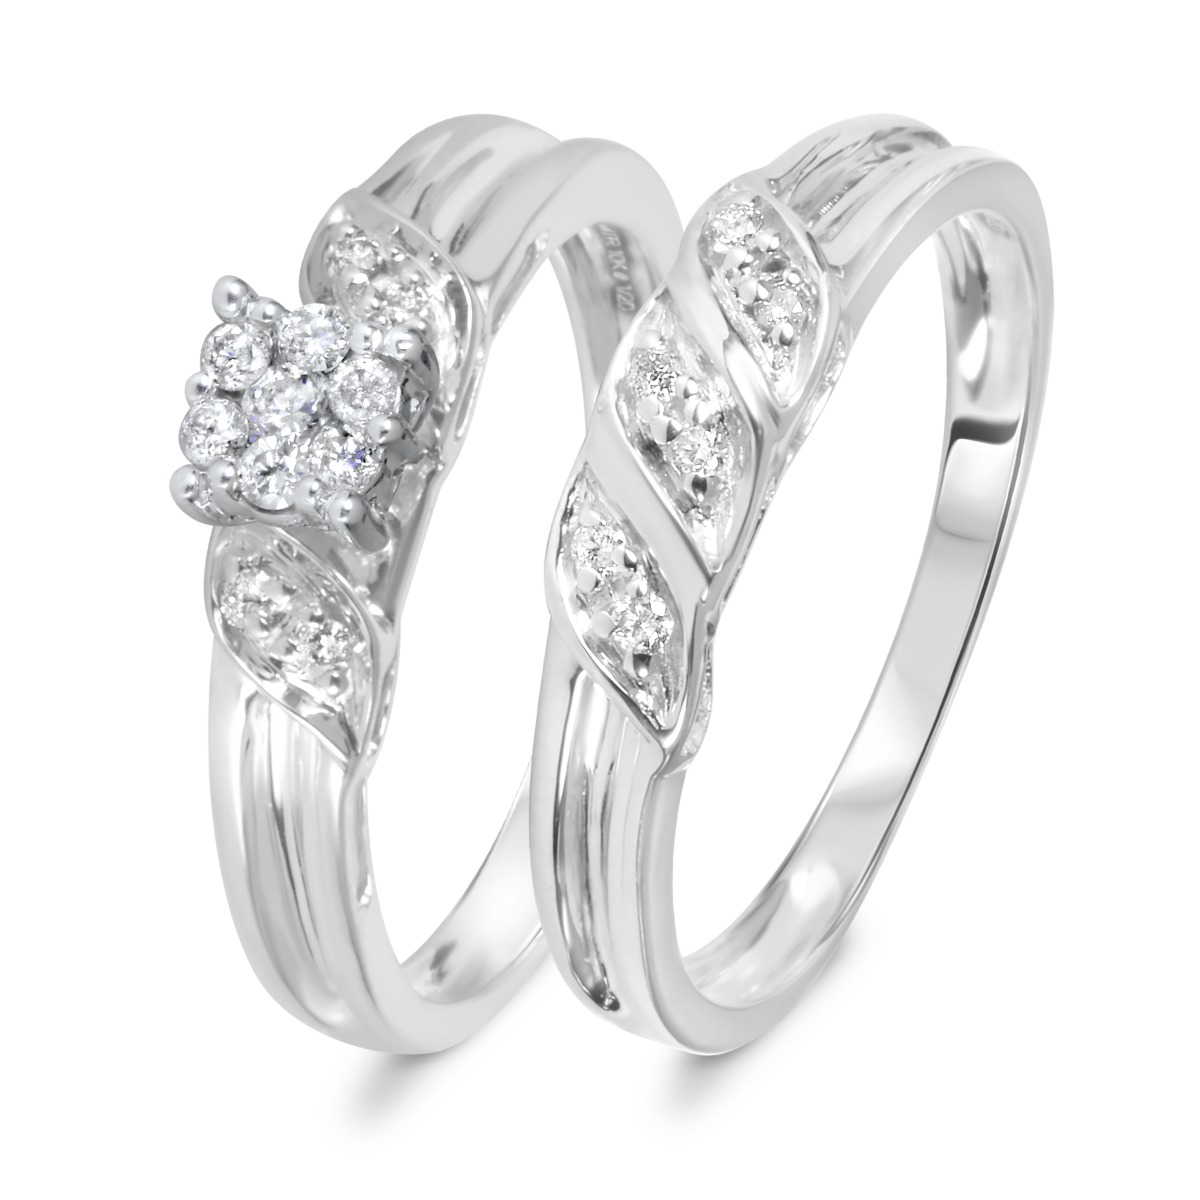 7 Carat Diamond Bridal Wedding Ring Set 10k White Gold  My Trio Rings   Br133w10k